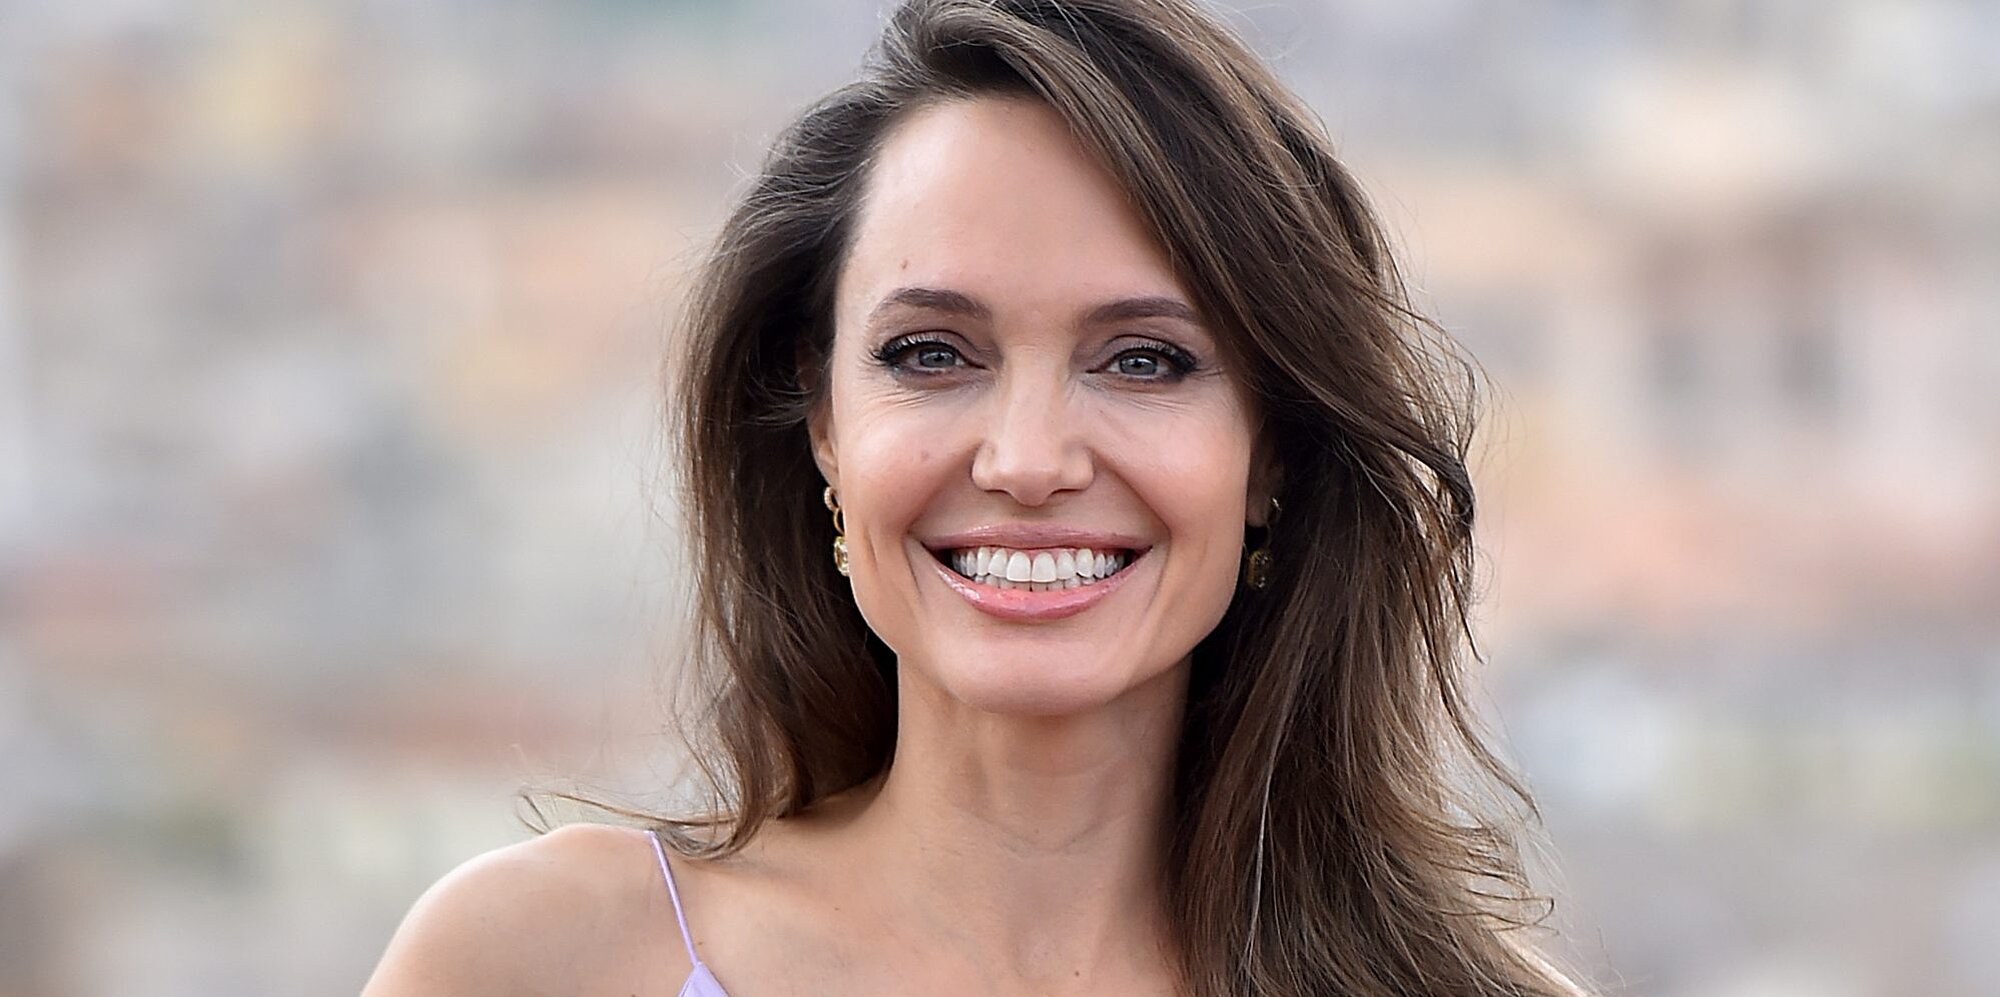 Angelina Jolie Is Calling Out Racism in Medicine After Her Daughter's Post-Surgery Care